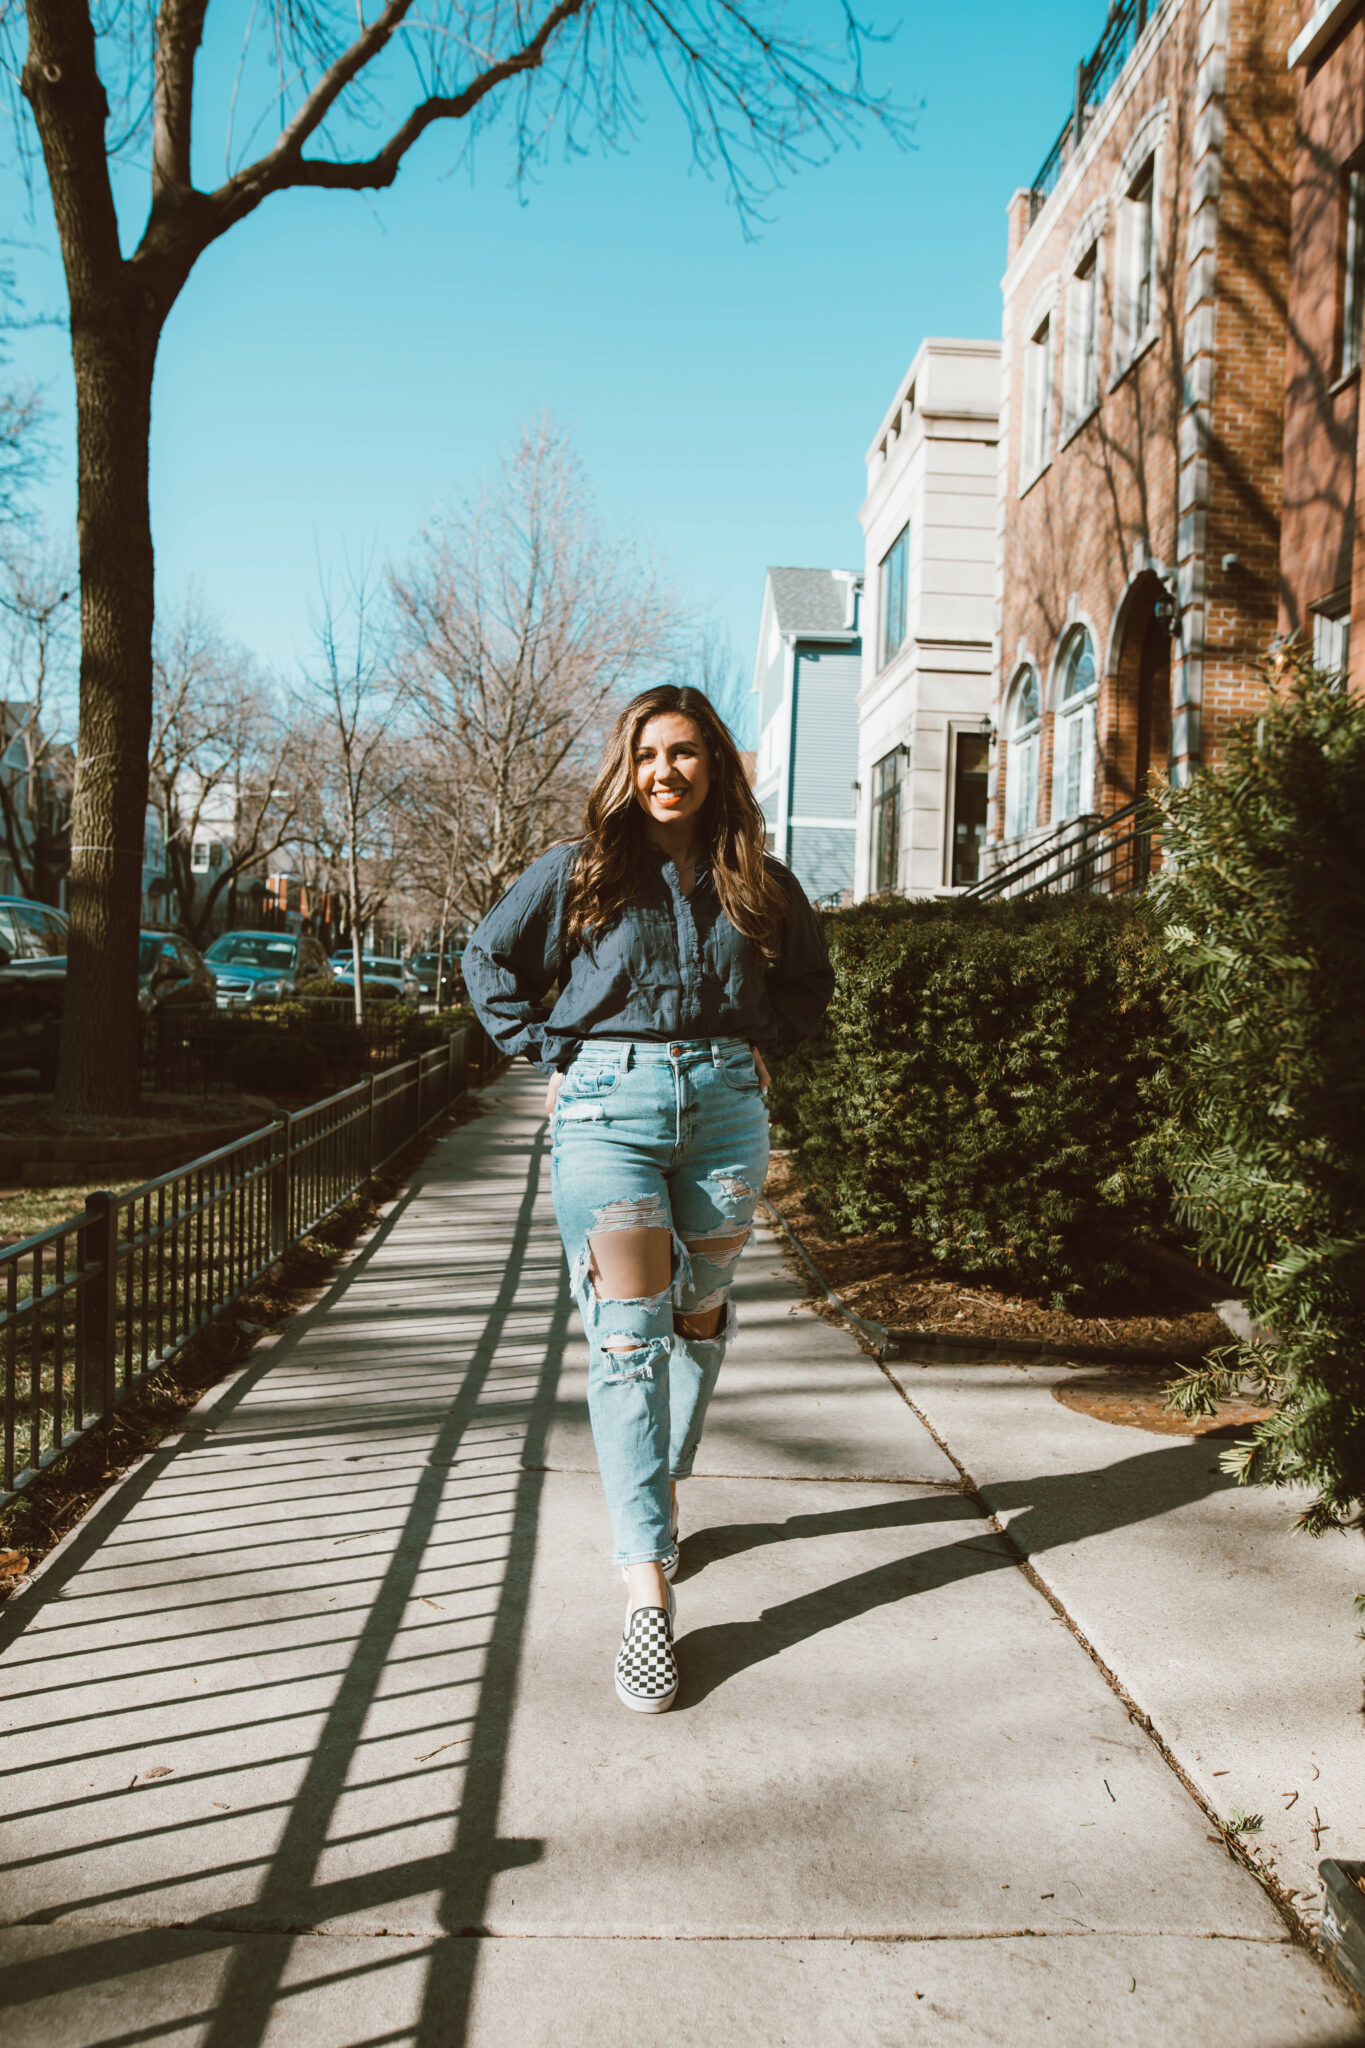 Poet Blouse by popular Chicago fashion blog, Glass of Glam: image of a woman wearing a poet blouse, distressed denim and black and white checkered Vans sneakers.